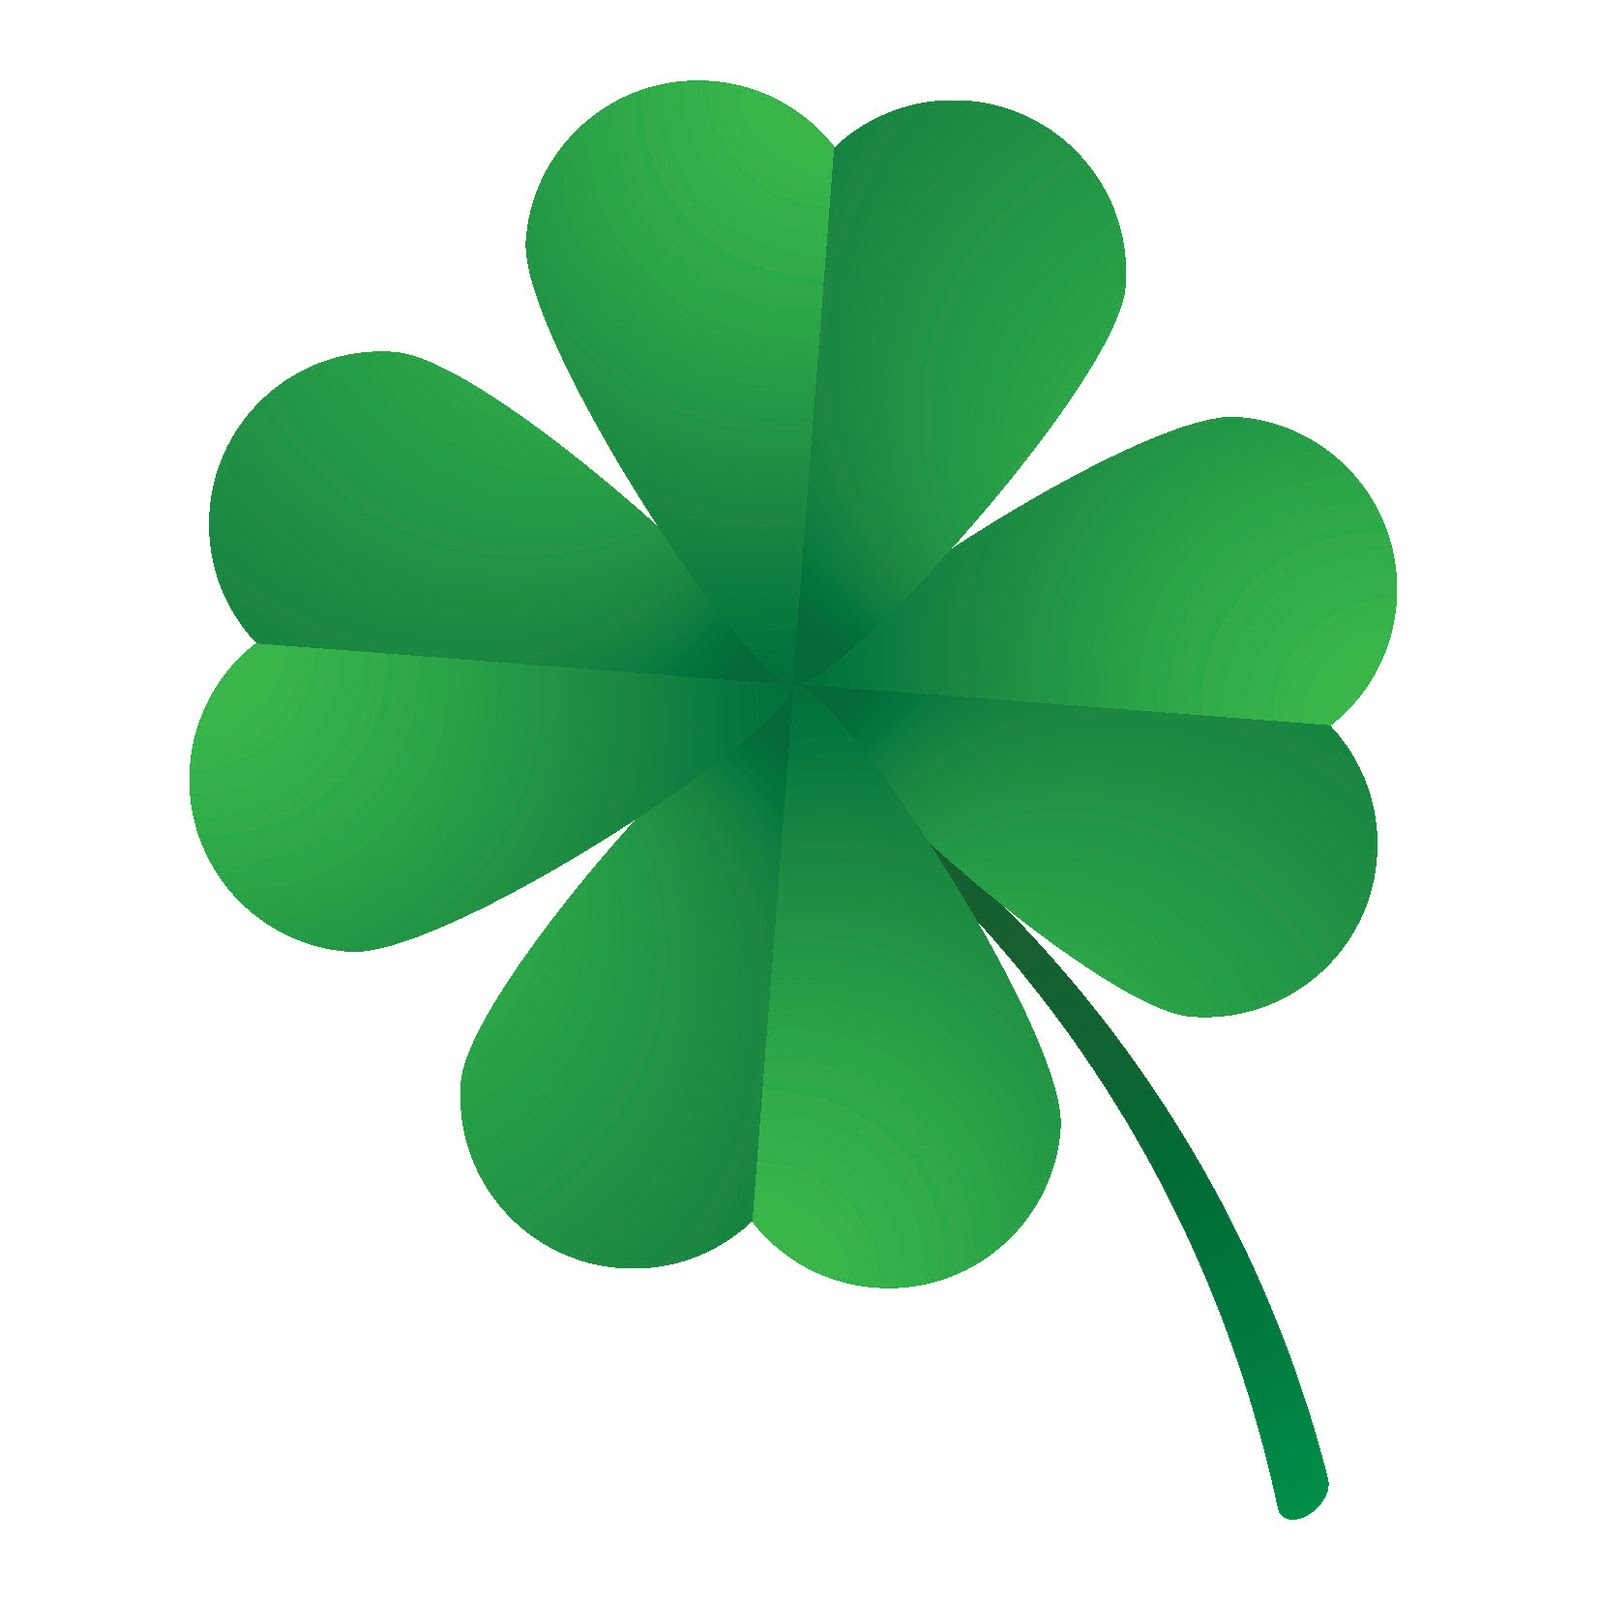 1600x1600 Four Leaf Clover 4 Leaf Clover Clipart Of Shamrocks And Four